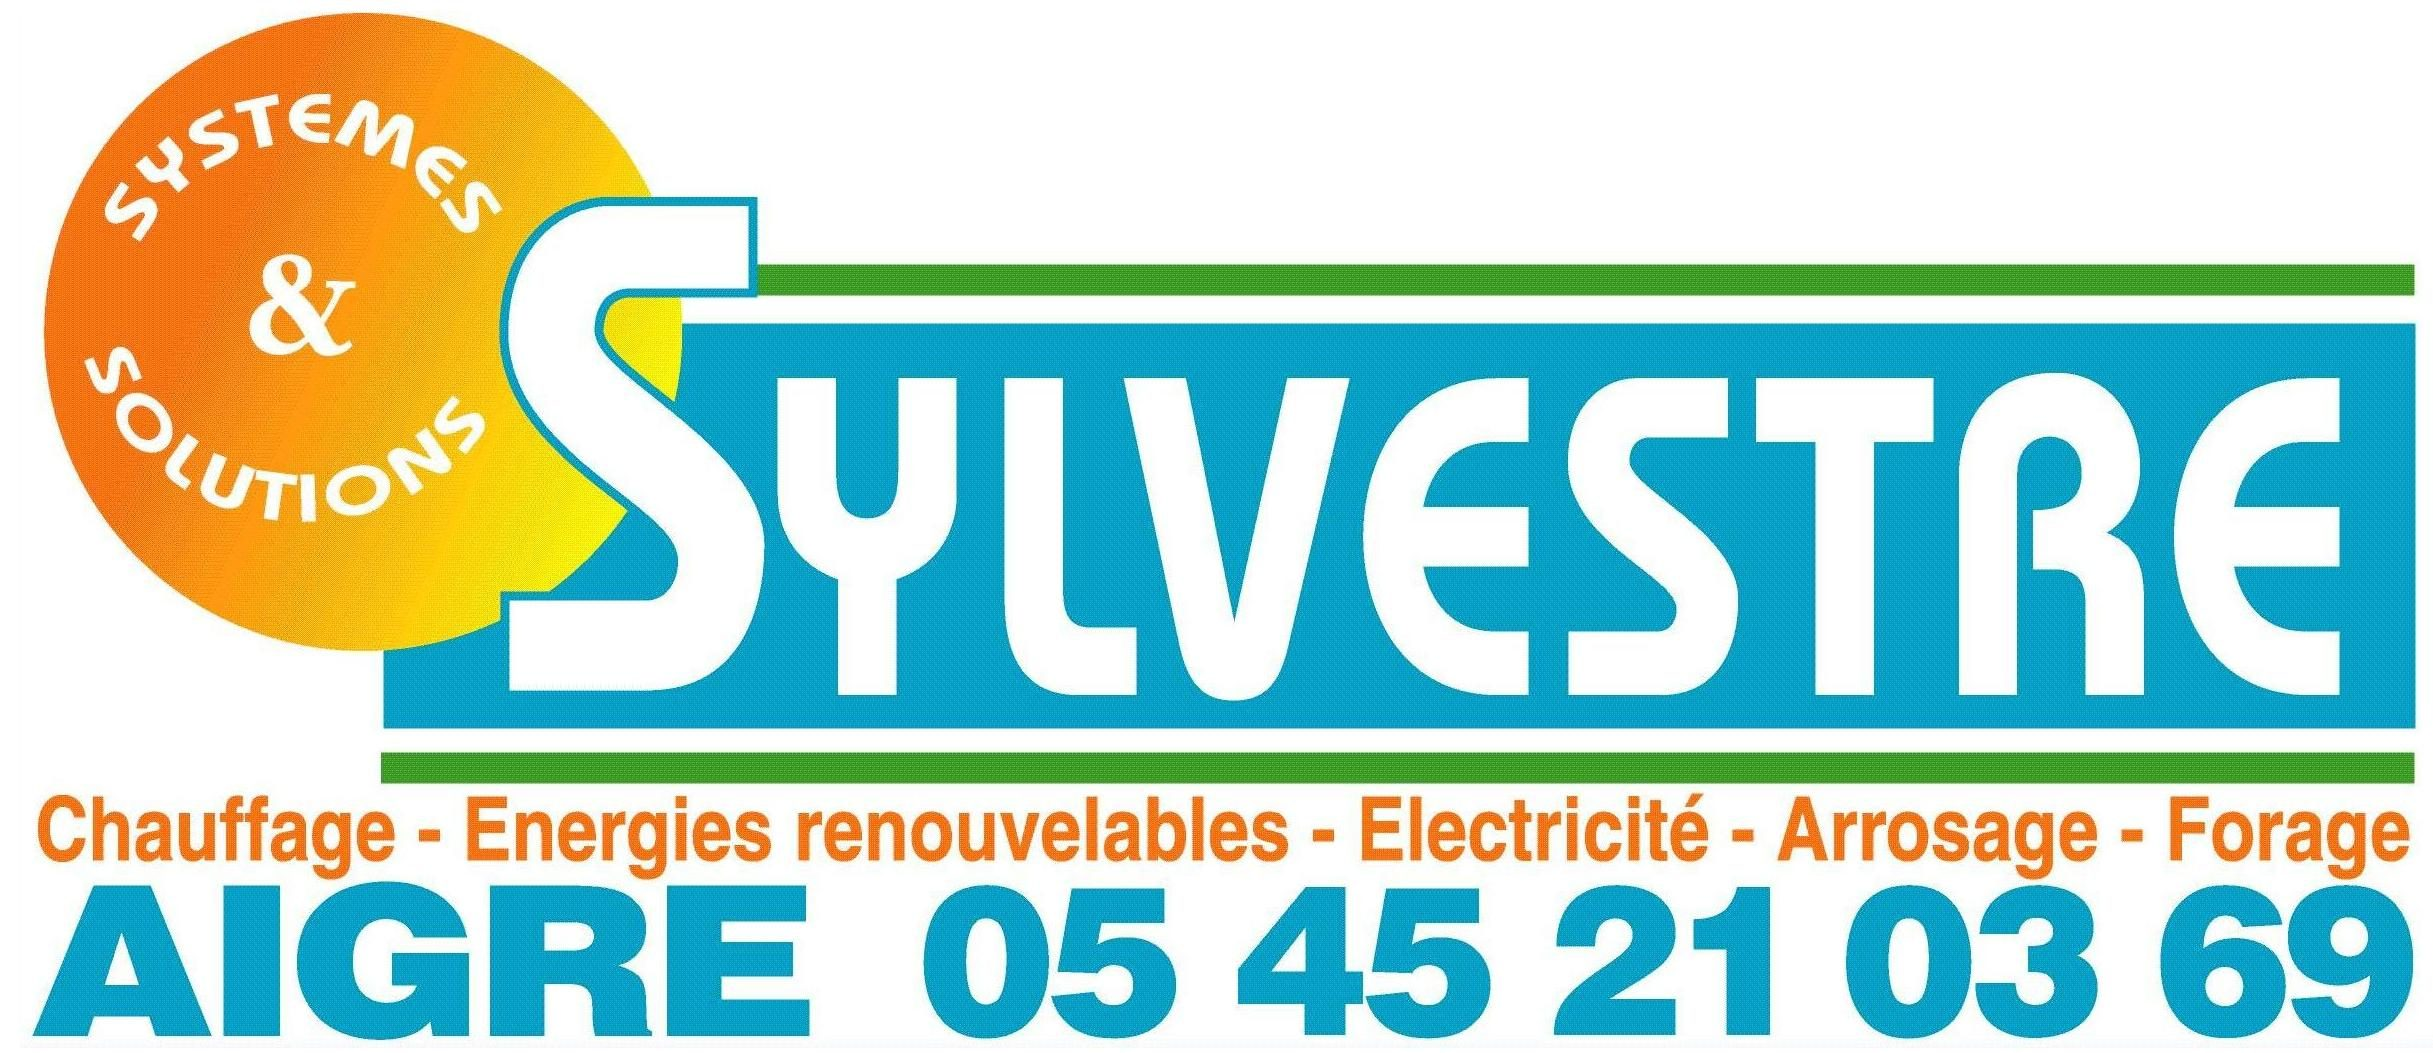 SYSTEMES ET SOLUTIONS SYLVESTRE